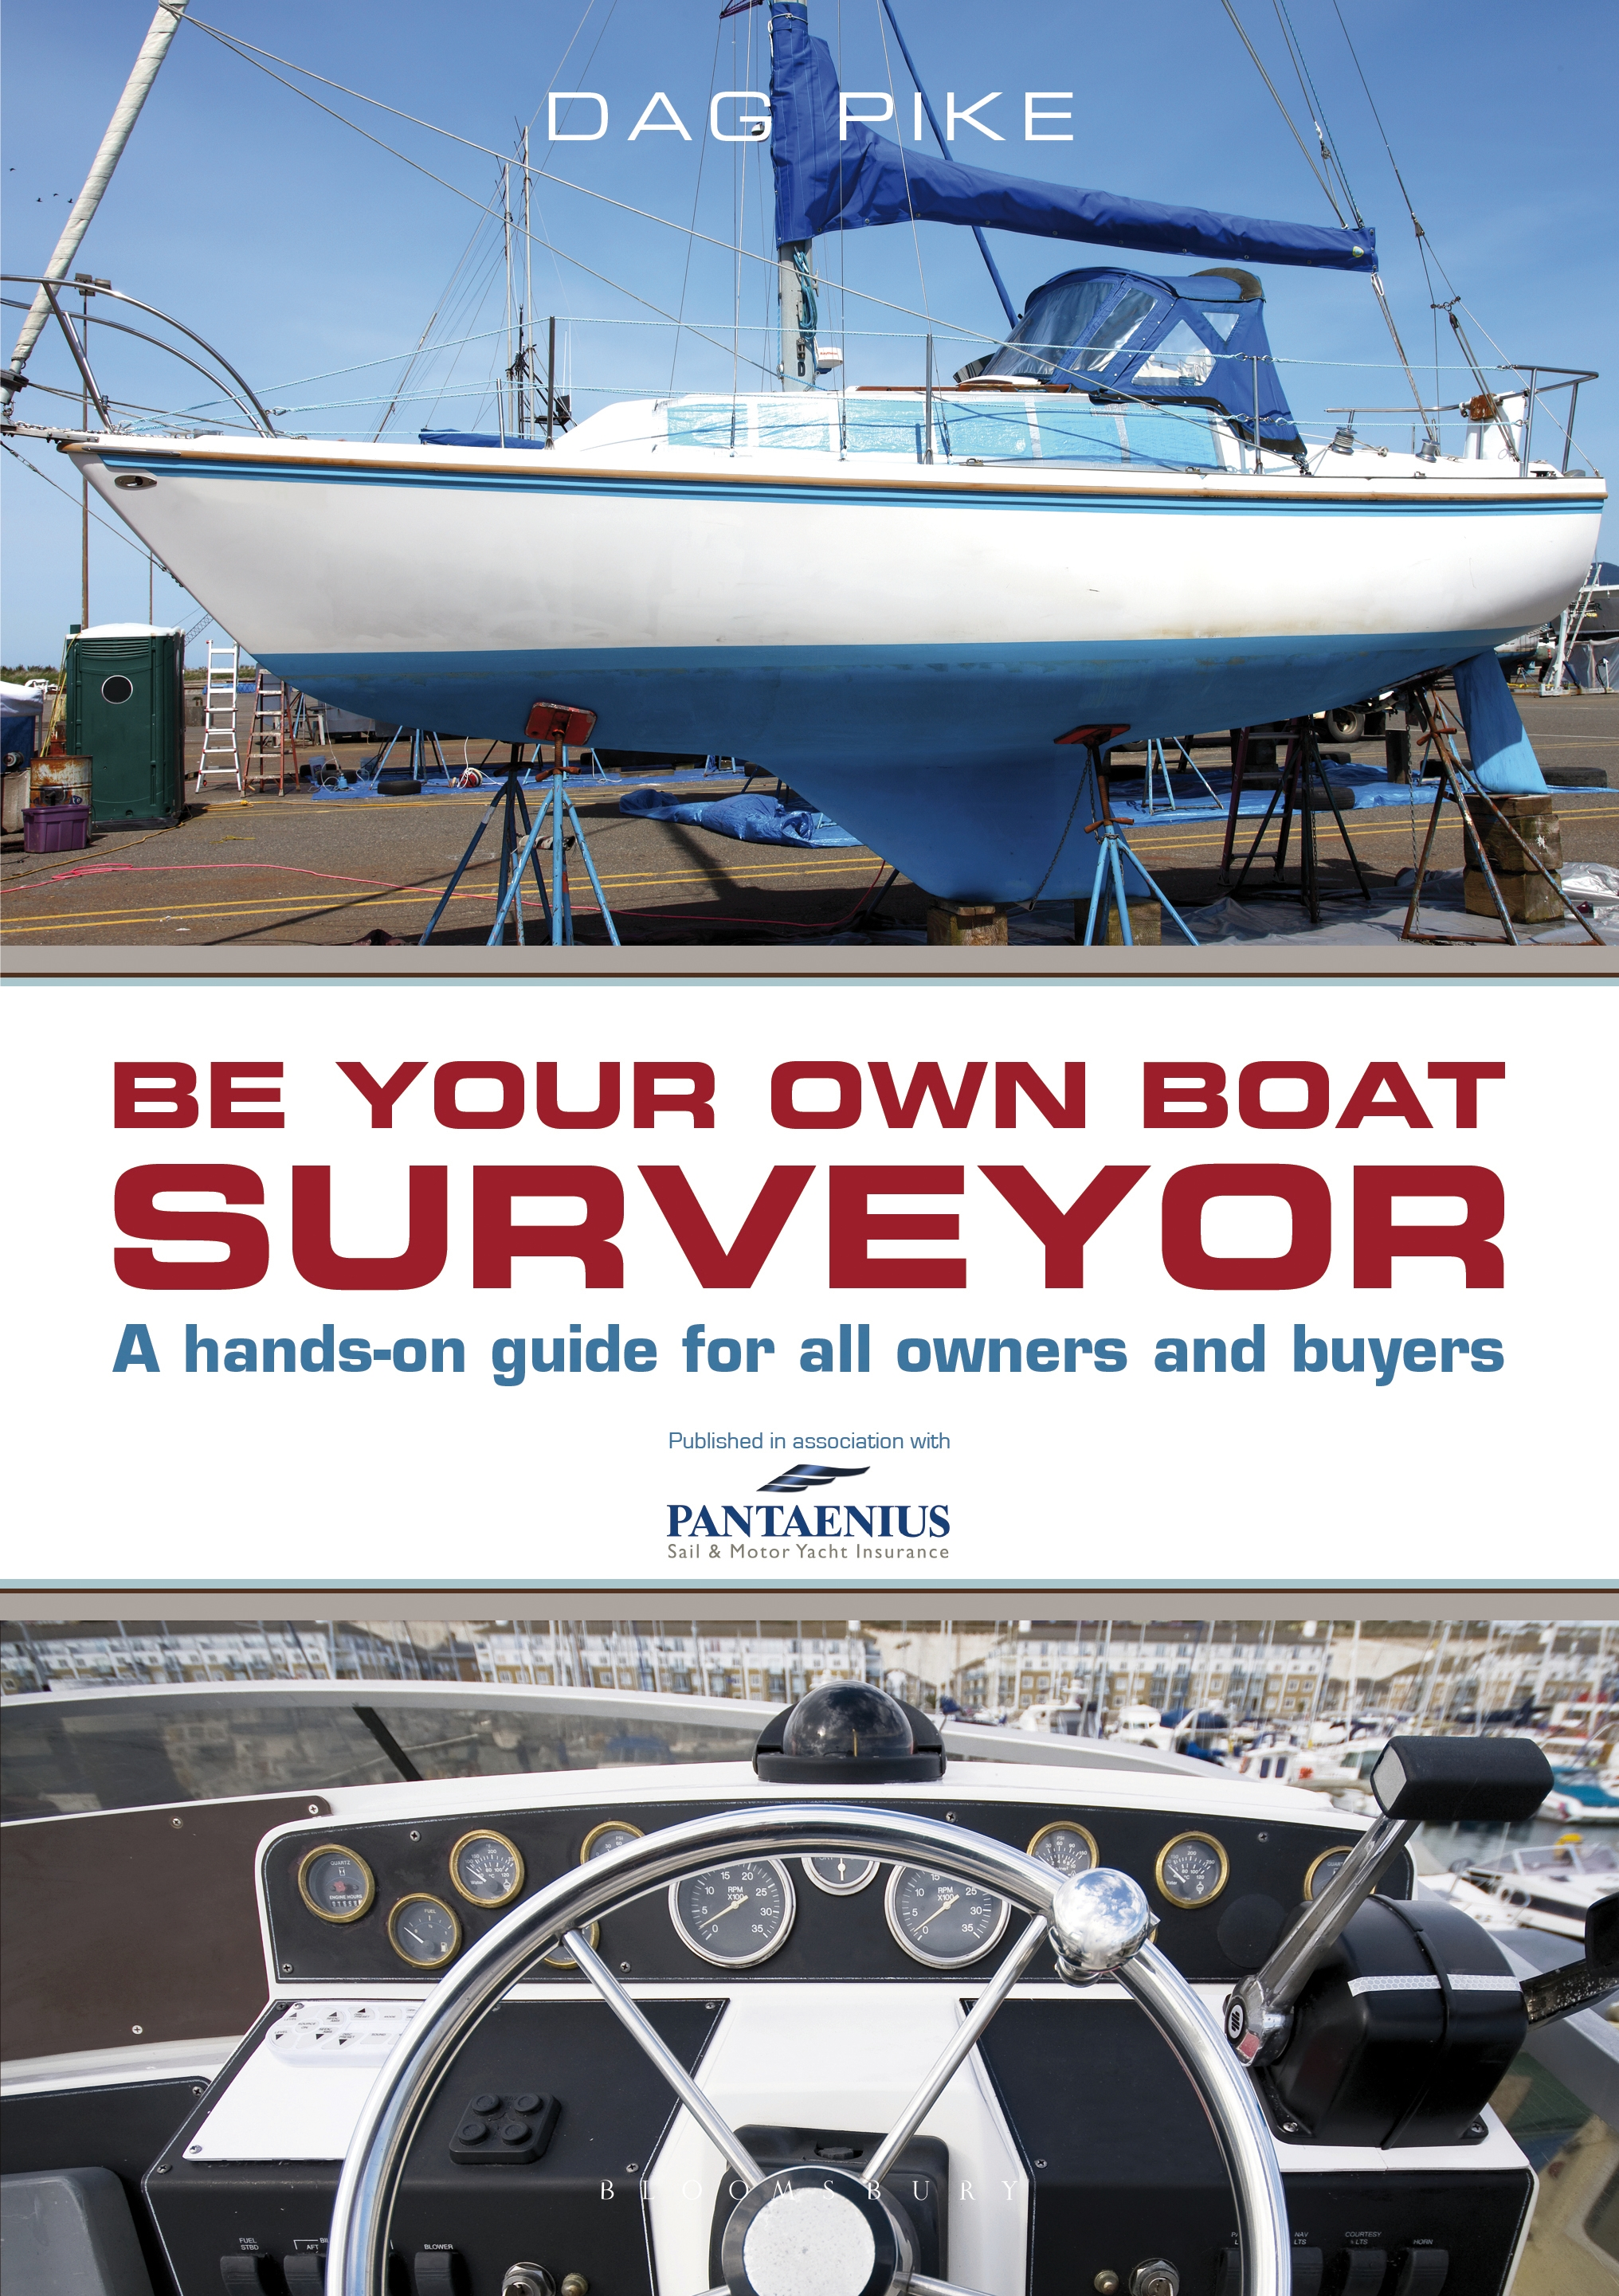 Be Your Own Boat Surveyor A hands-on guide for all owners and buyers